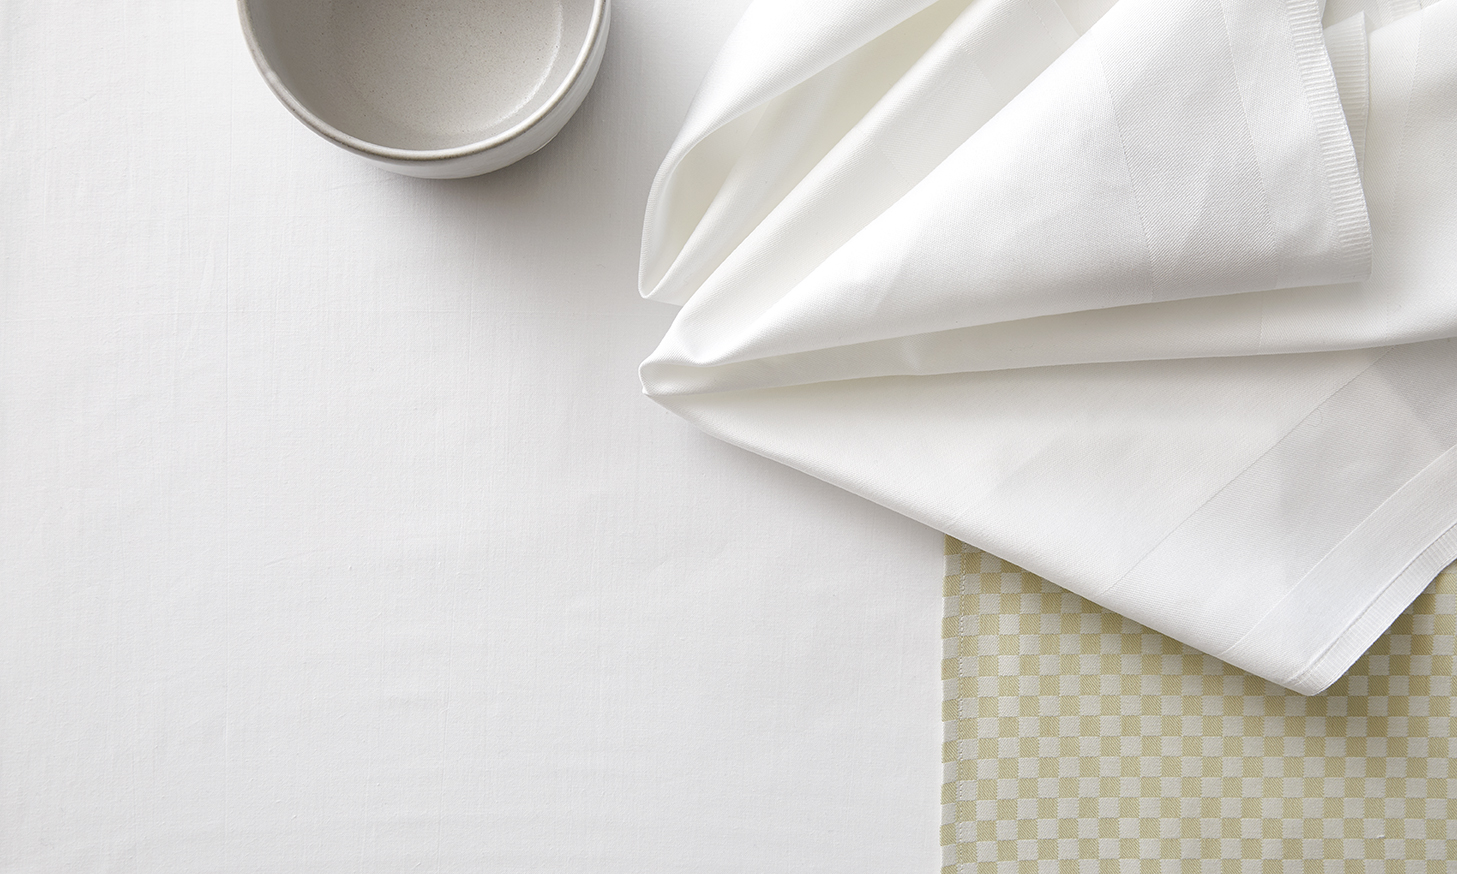 Table Napkins  Designed with luxury hotels in mind, Revival New York napkins are perfectly tailored to compliment any table setting.   Learn More...